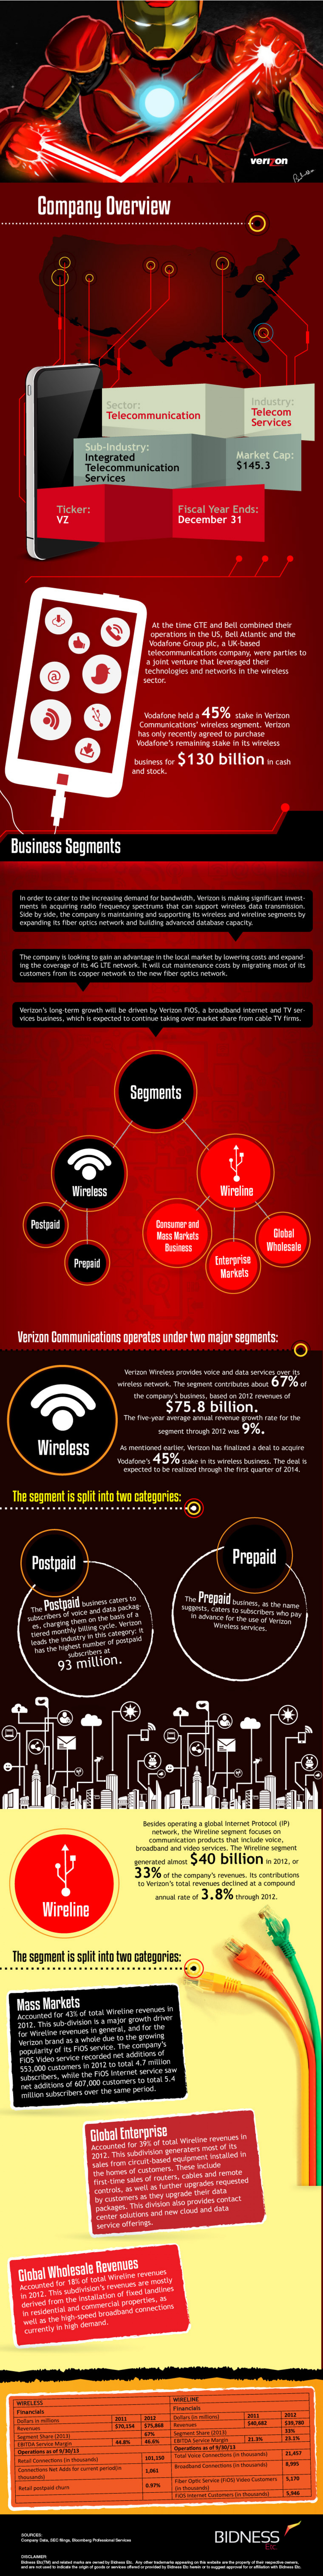 Verizon (VZ) Company Description Infographic